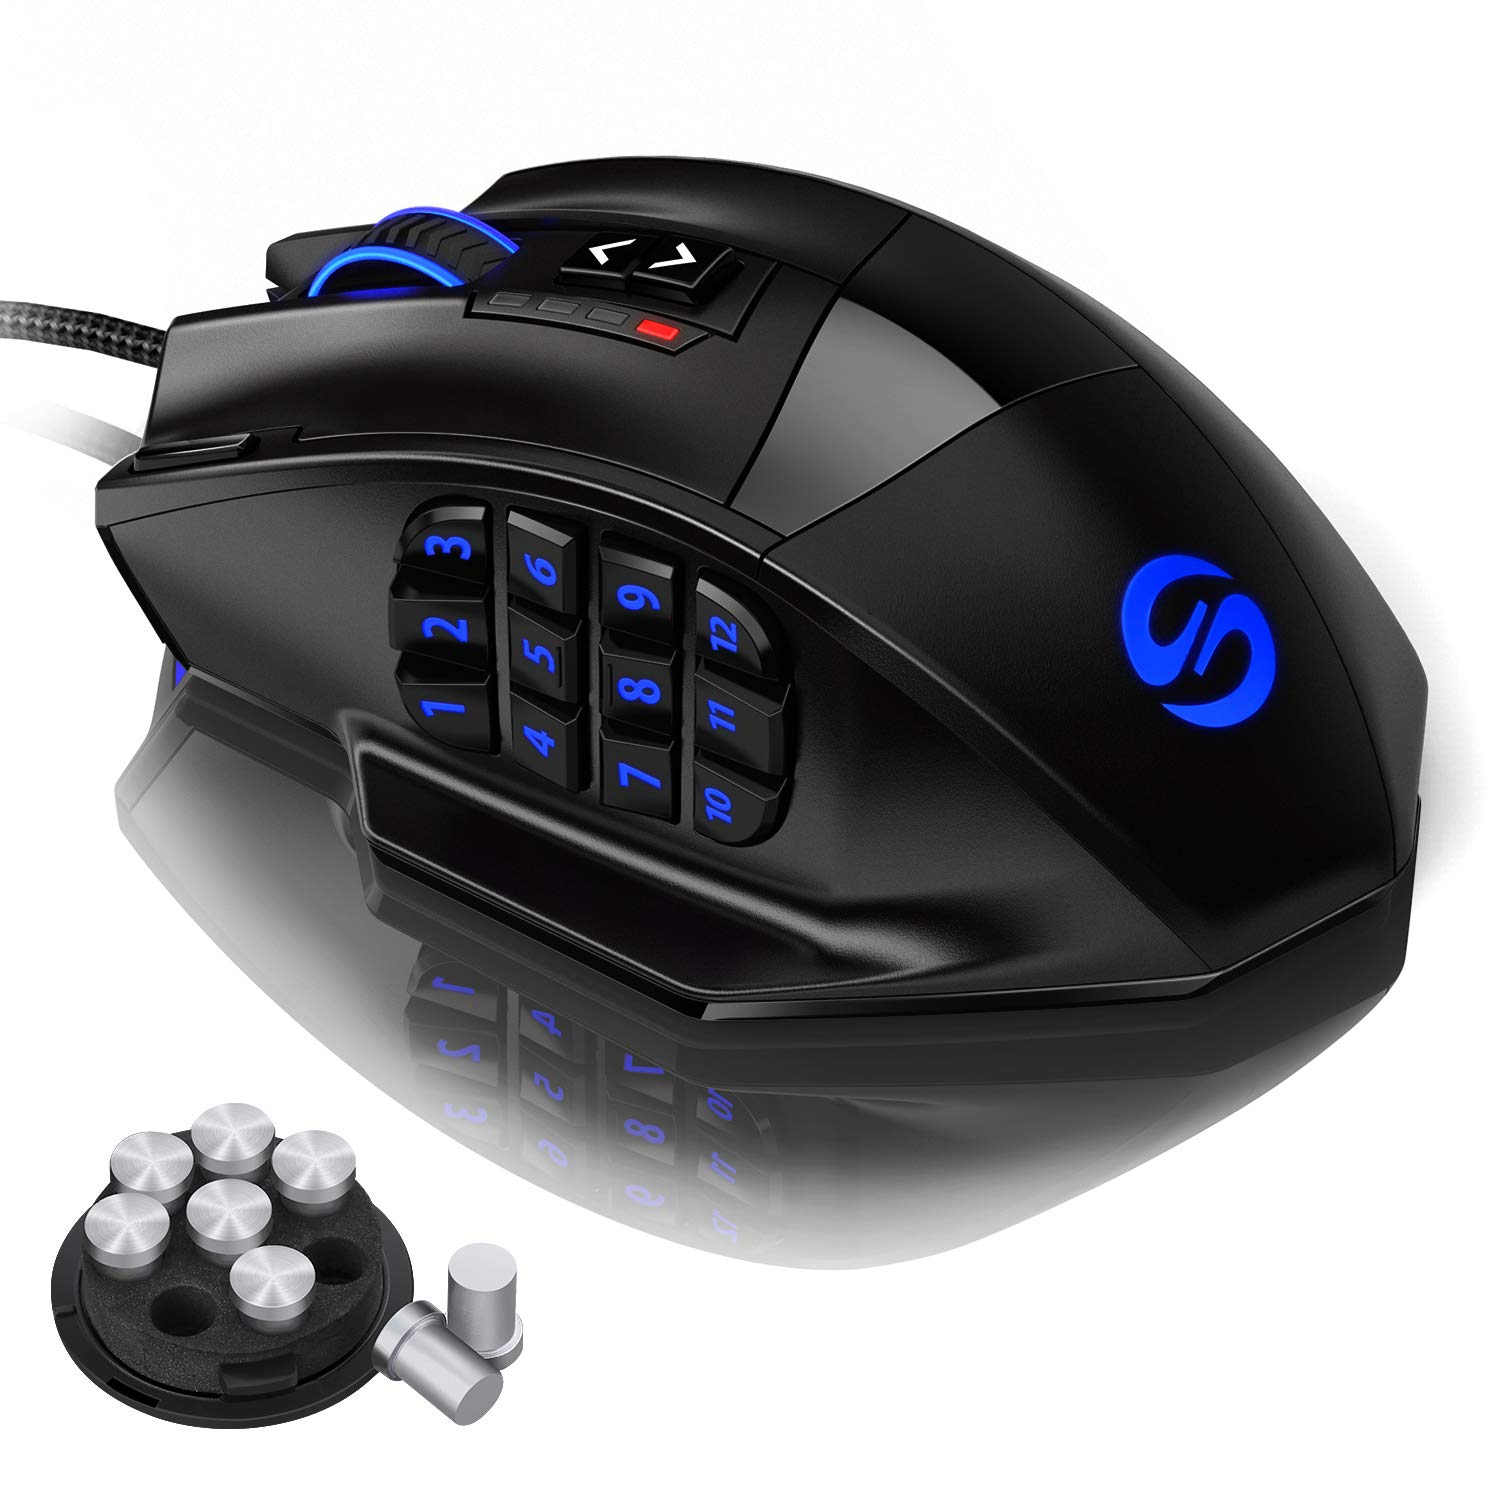 Top 10 Best Gaming Mouse Reviews in 2020 2